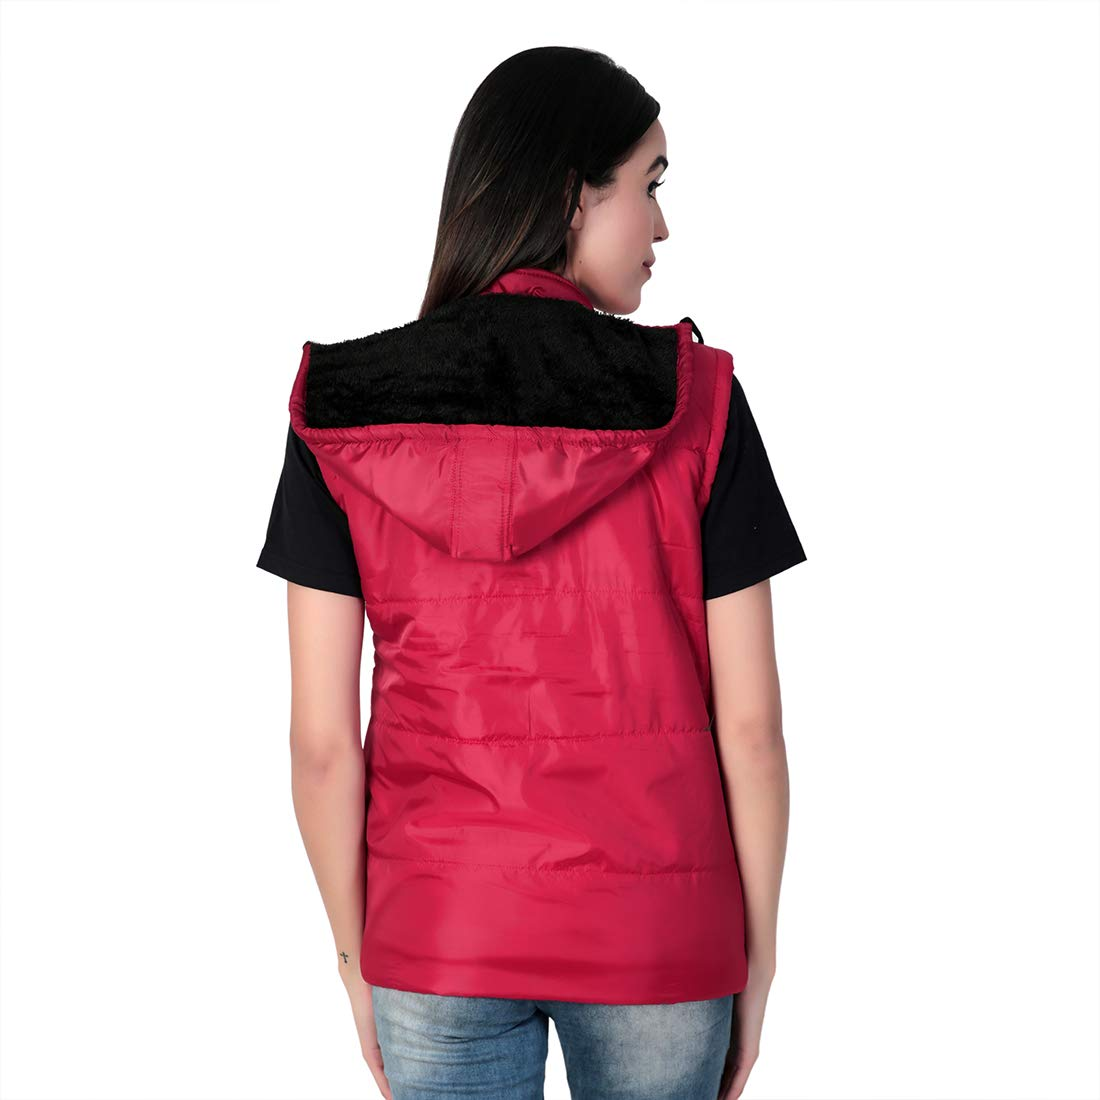 Buy LAPATA Half Sleeves Winter Bomber Jacket for Girls or Ladies (Red, Large) at Amazon.in